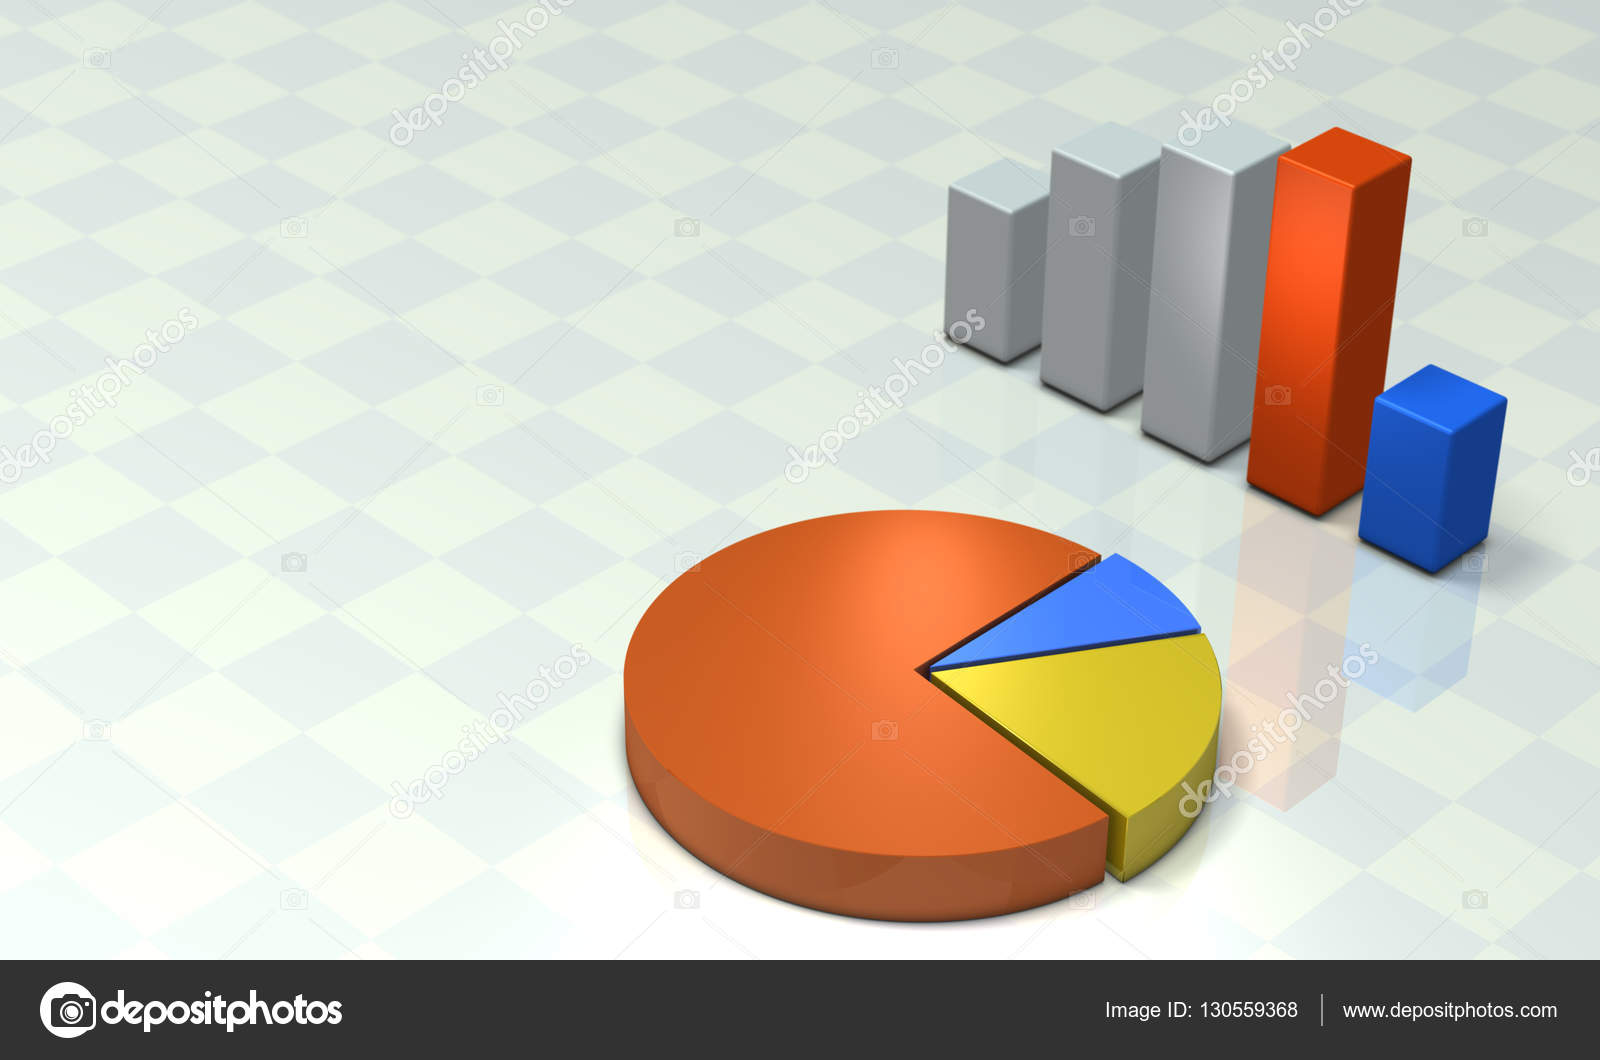 Pie chart and bar graph choice image free any chart examples bar graphs and pie charts images free any chart examples bar graph and pie chart background nvjuhfo Image collections